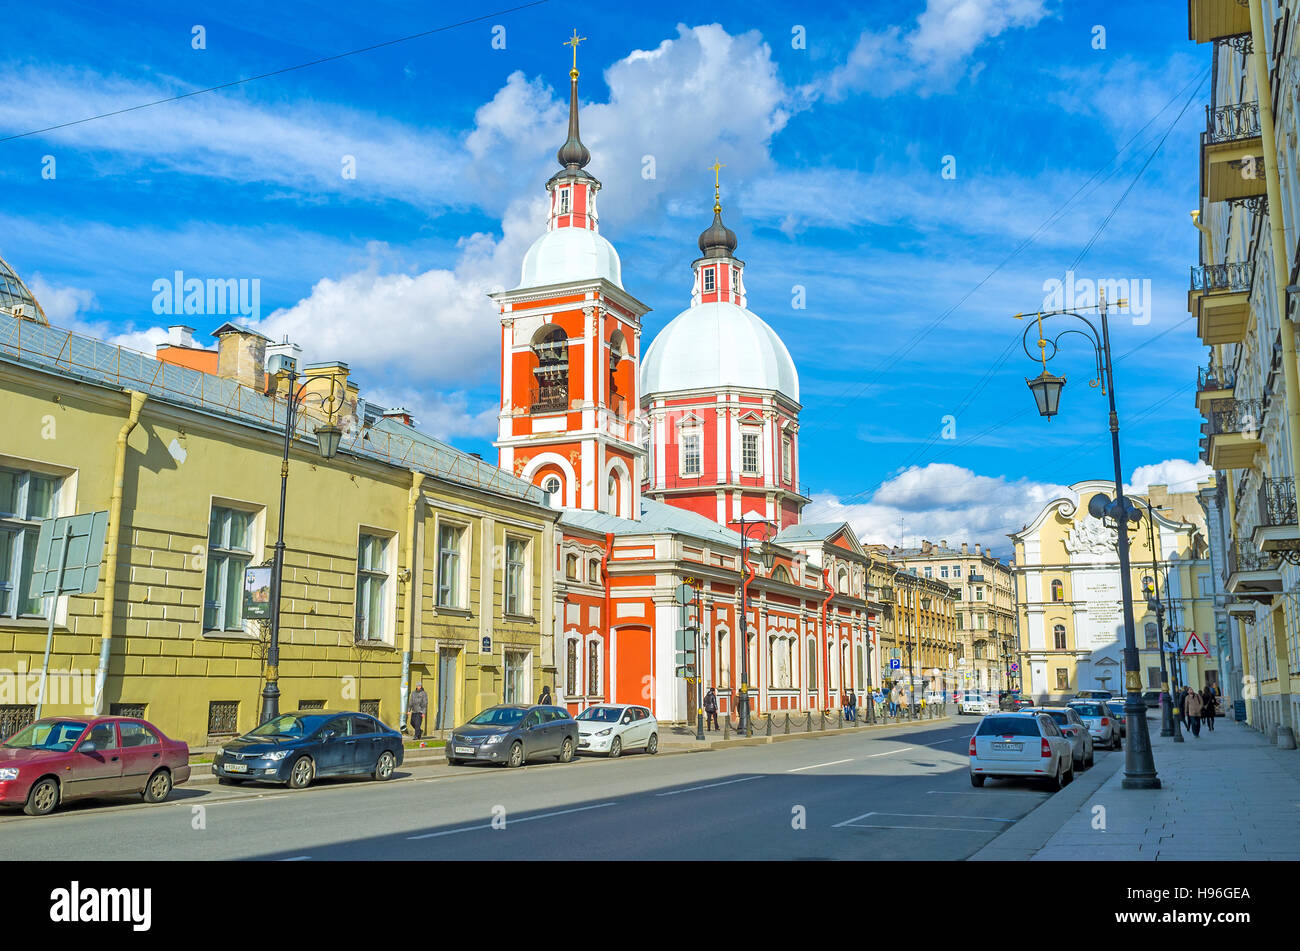 The Church of Great Martyr and Healer St. Panteleimon, is sandwiched between old mansions in Pestel street - Stock Image